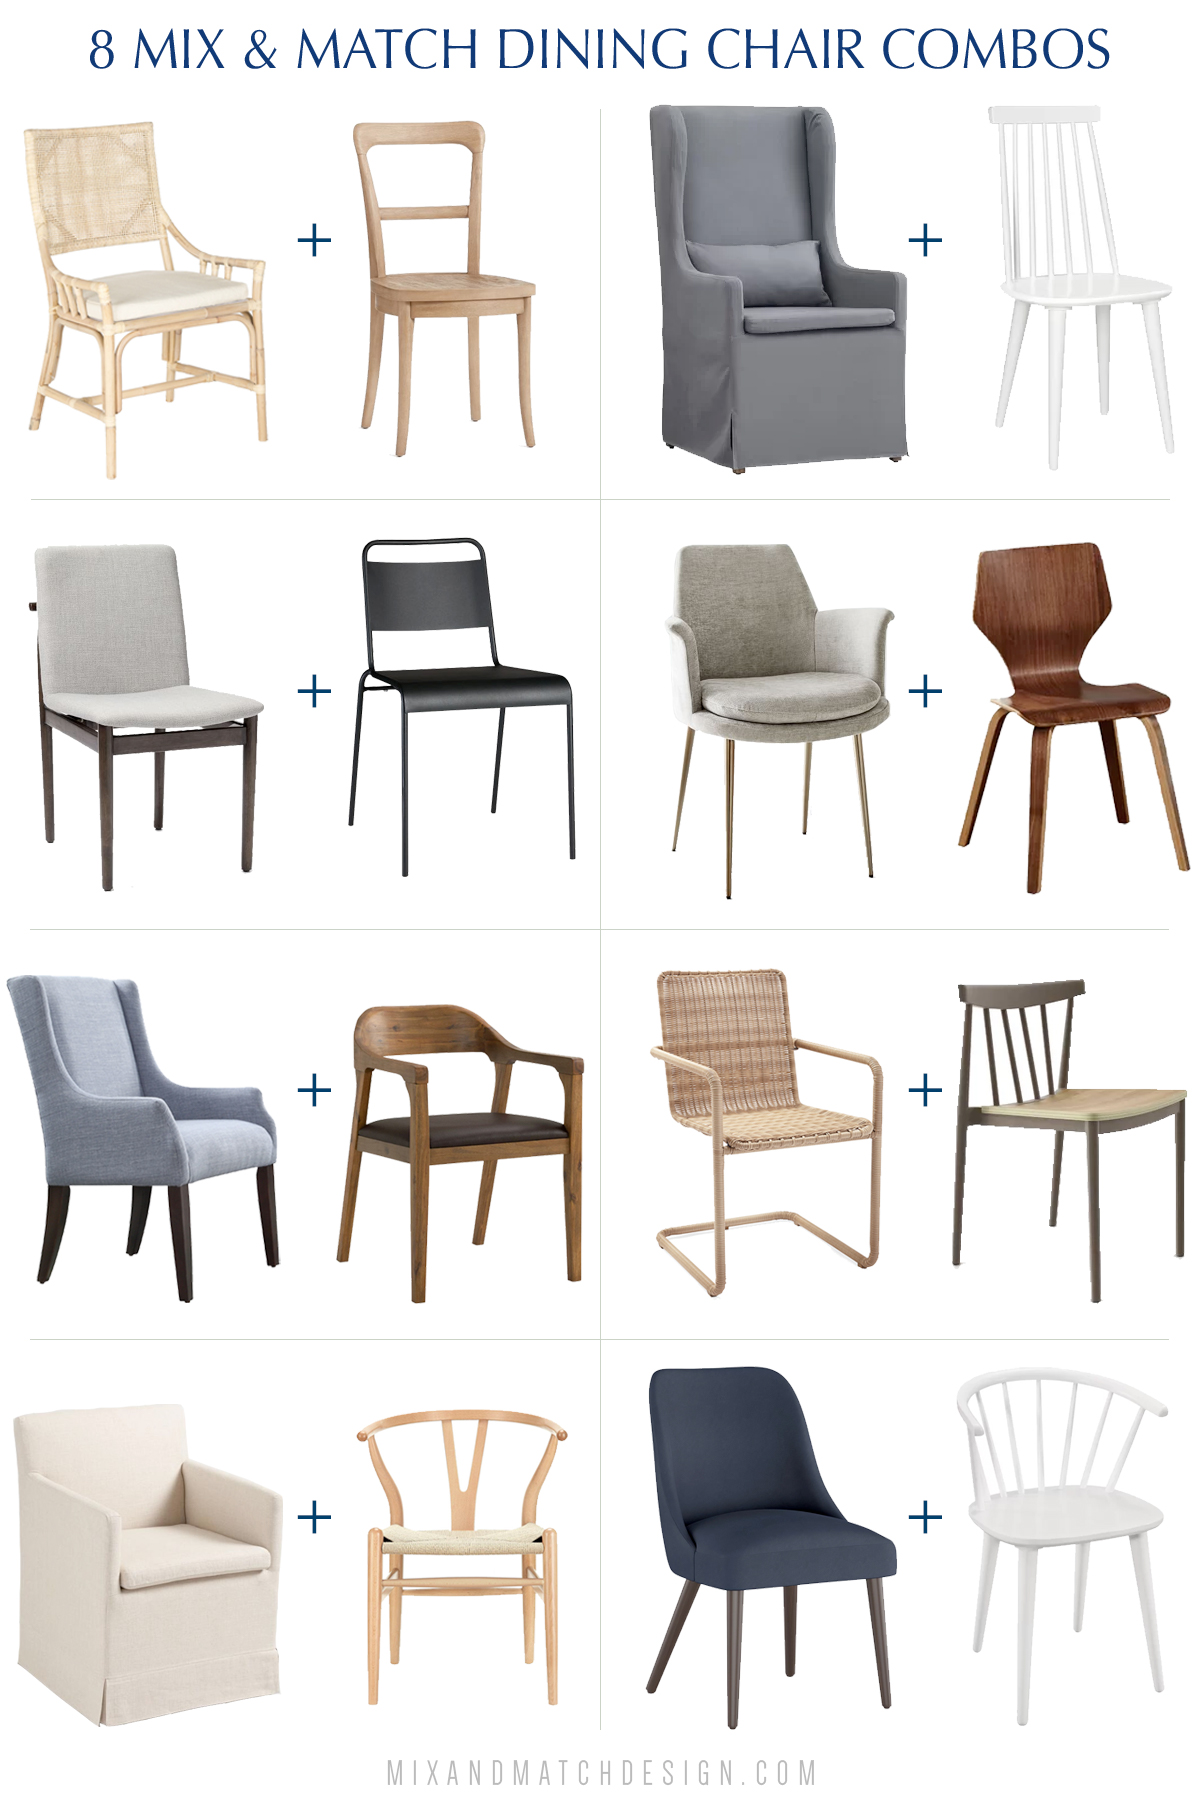 Mix-Match-Dining-Chairs-Combinations.jpg